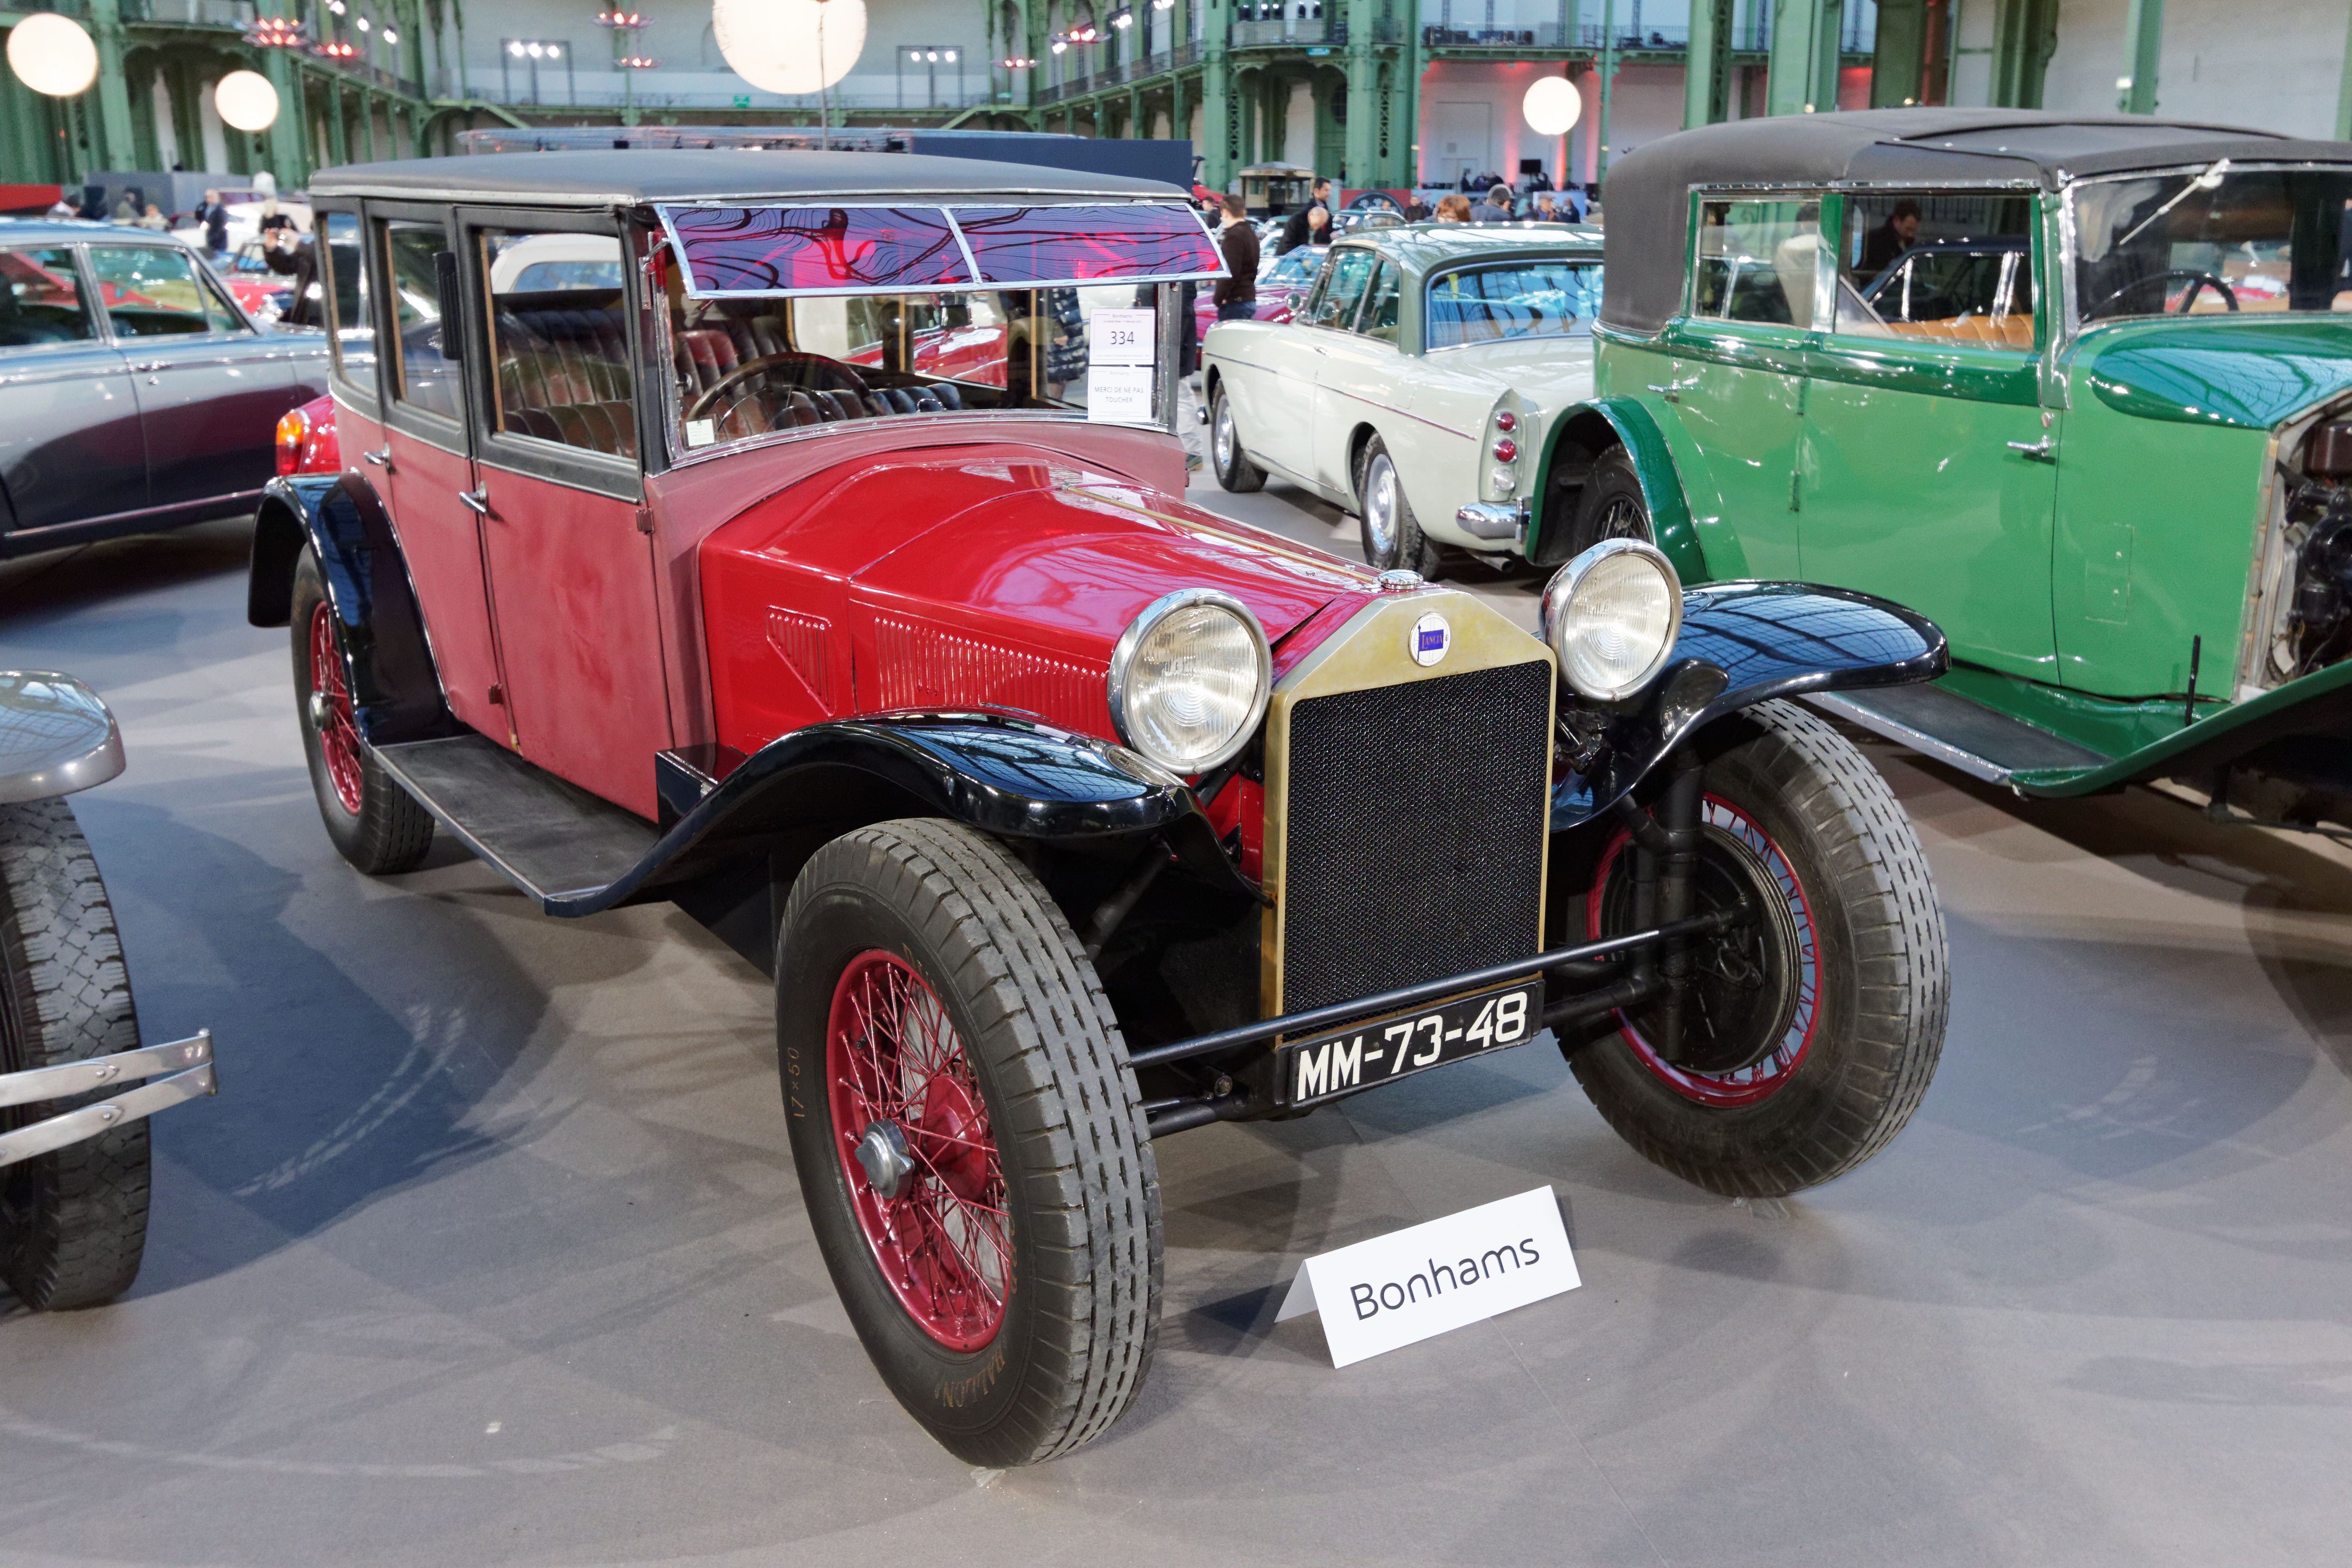 https://upload.wikimedia.org/wikipedia/commons/e/e6/Paris_-_Bonhams_2015_-_Lancia_Lambda_7th_Series_Weymann_Limousine_-_1928_-_002.jpg